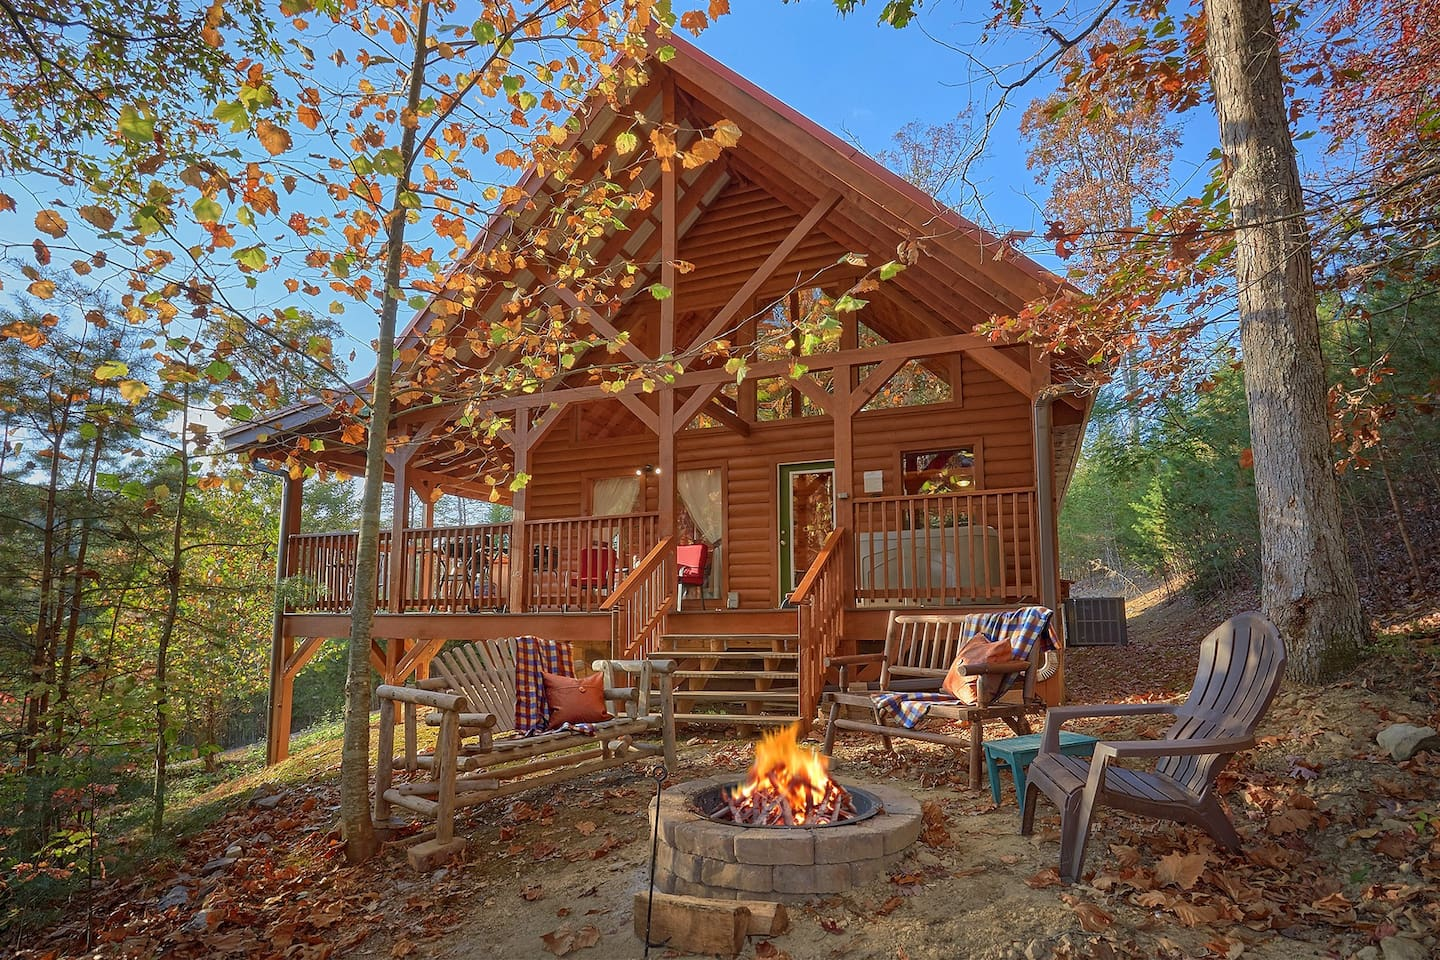 Building,Cabin,Shelter,Chair,Furniture